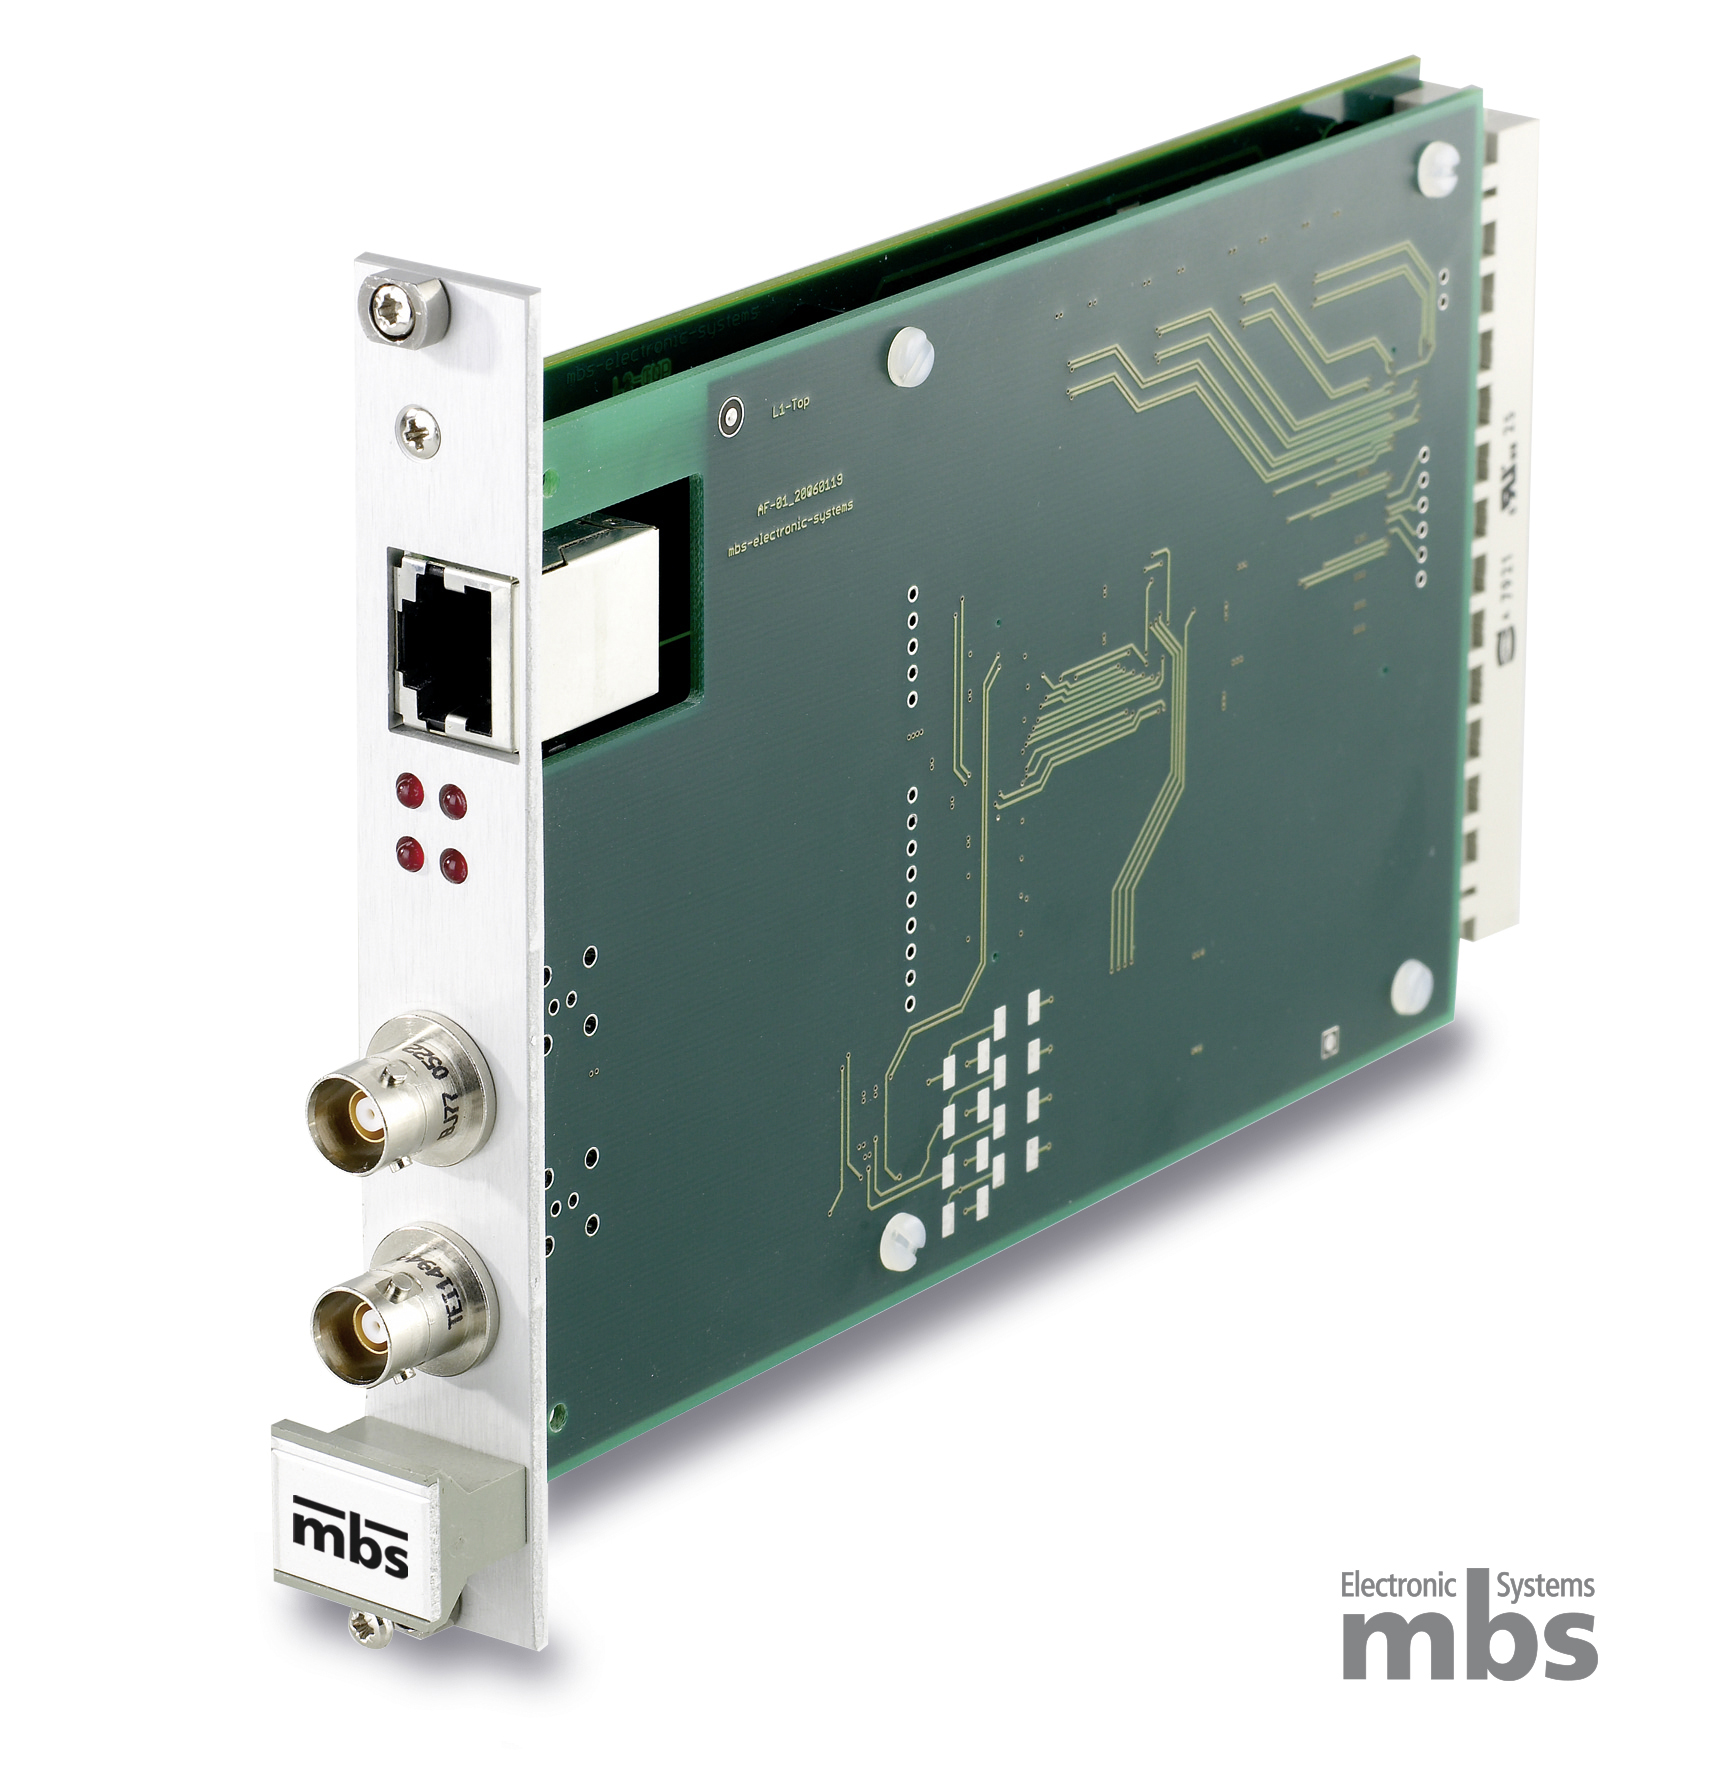 1553 Card | © Copyright by mbs Electronic Systems